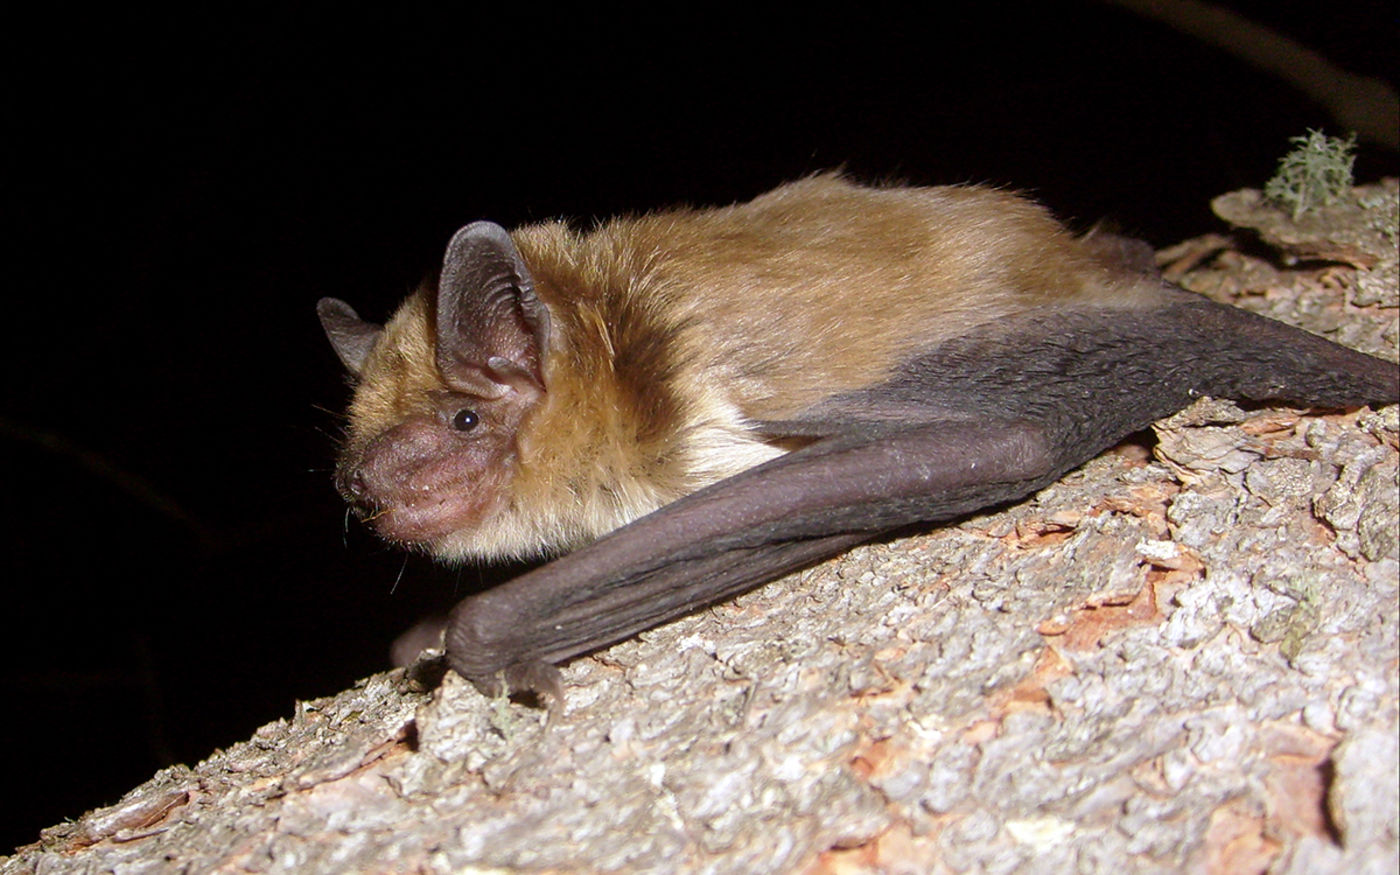 A brown bat with folded wings hooked onto tree bark